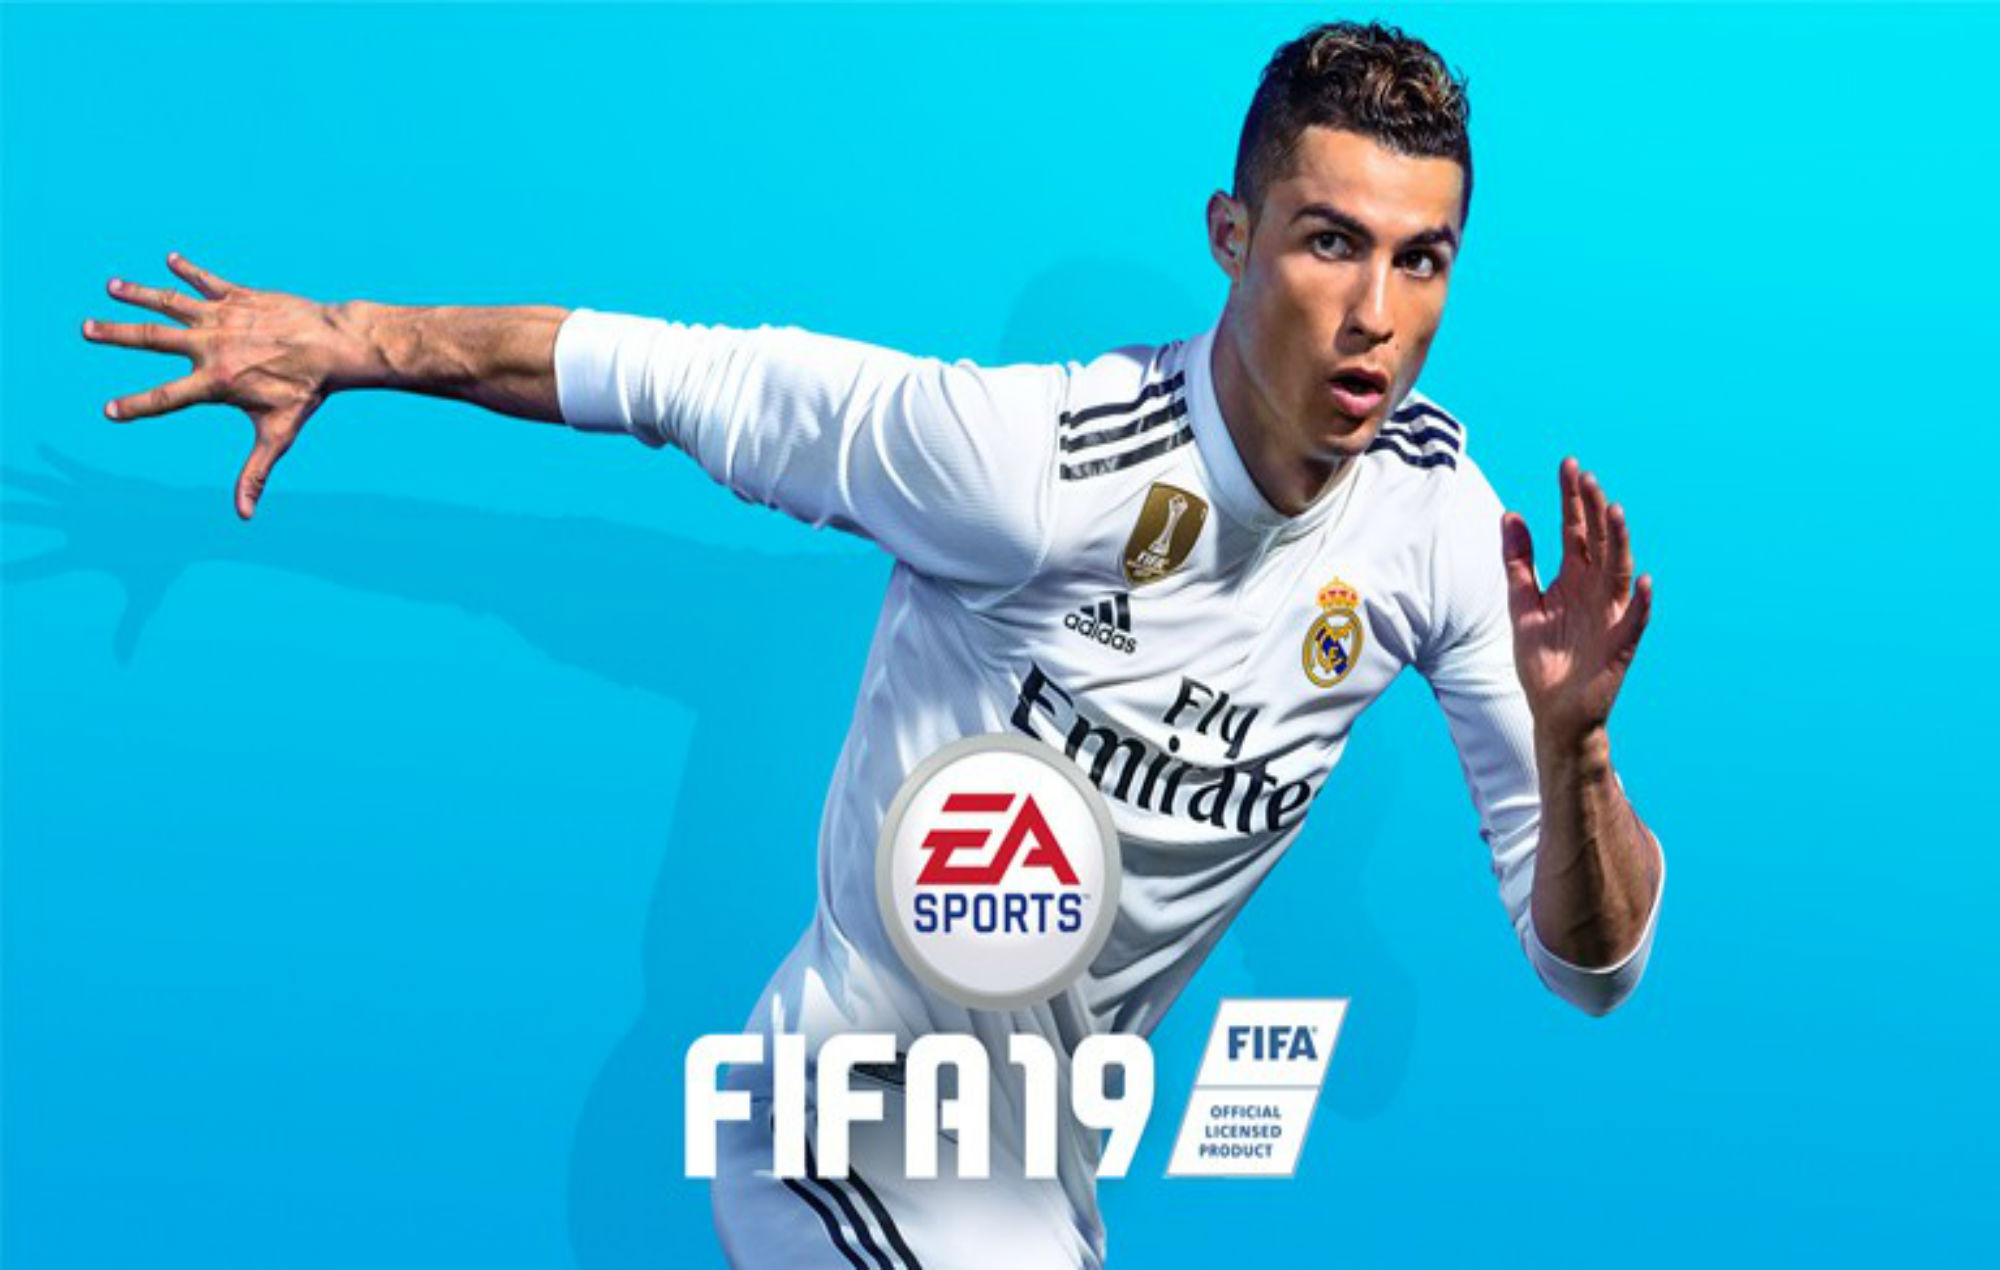 New FIFA 19 Soundtrack Released Featuring Childish Gambino